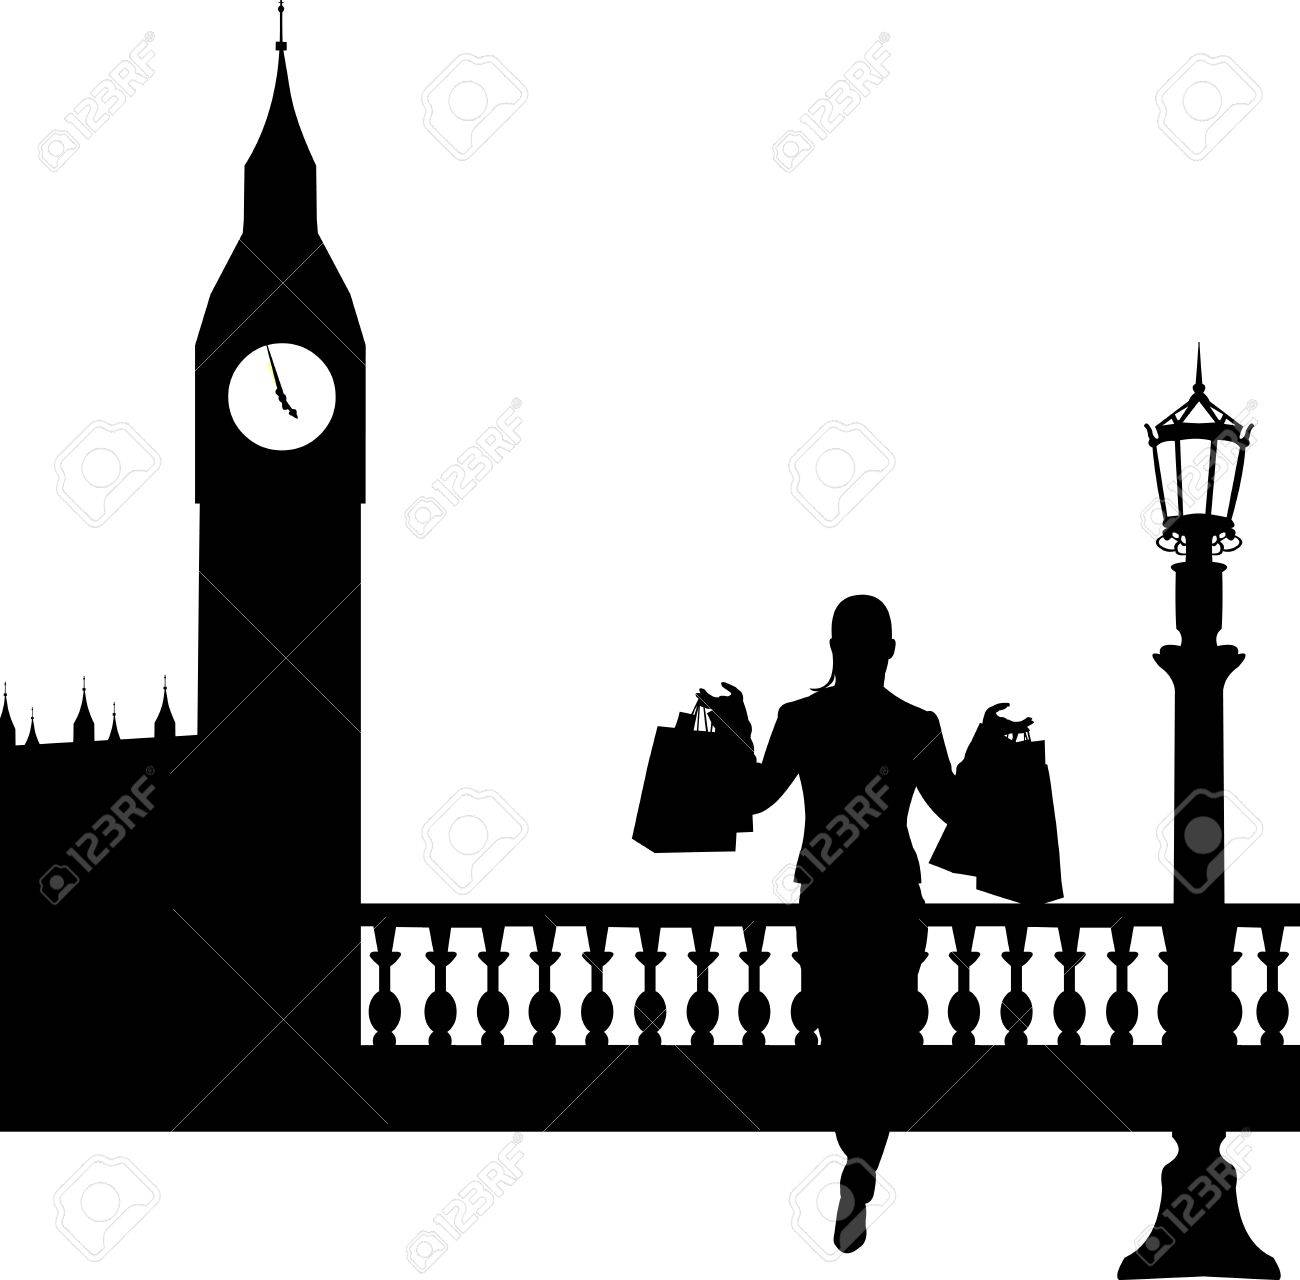 Woman in shopping in London in front of Big Ben silhouette, one in the series of similar images Stock Vector - 19532665